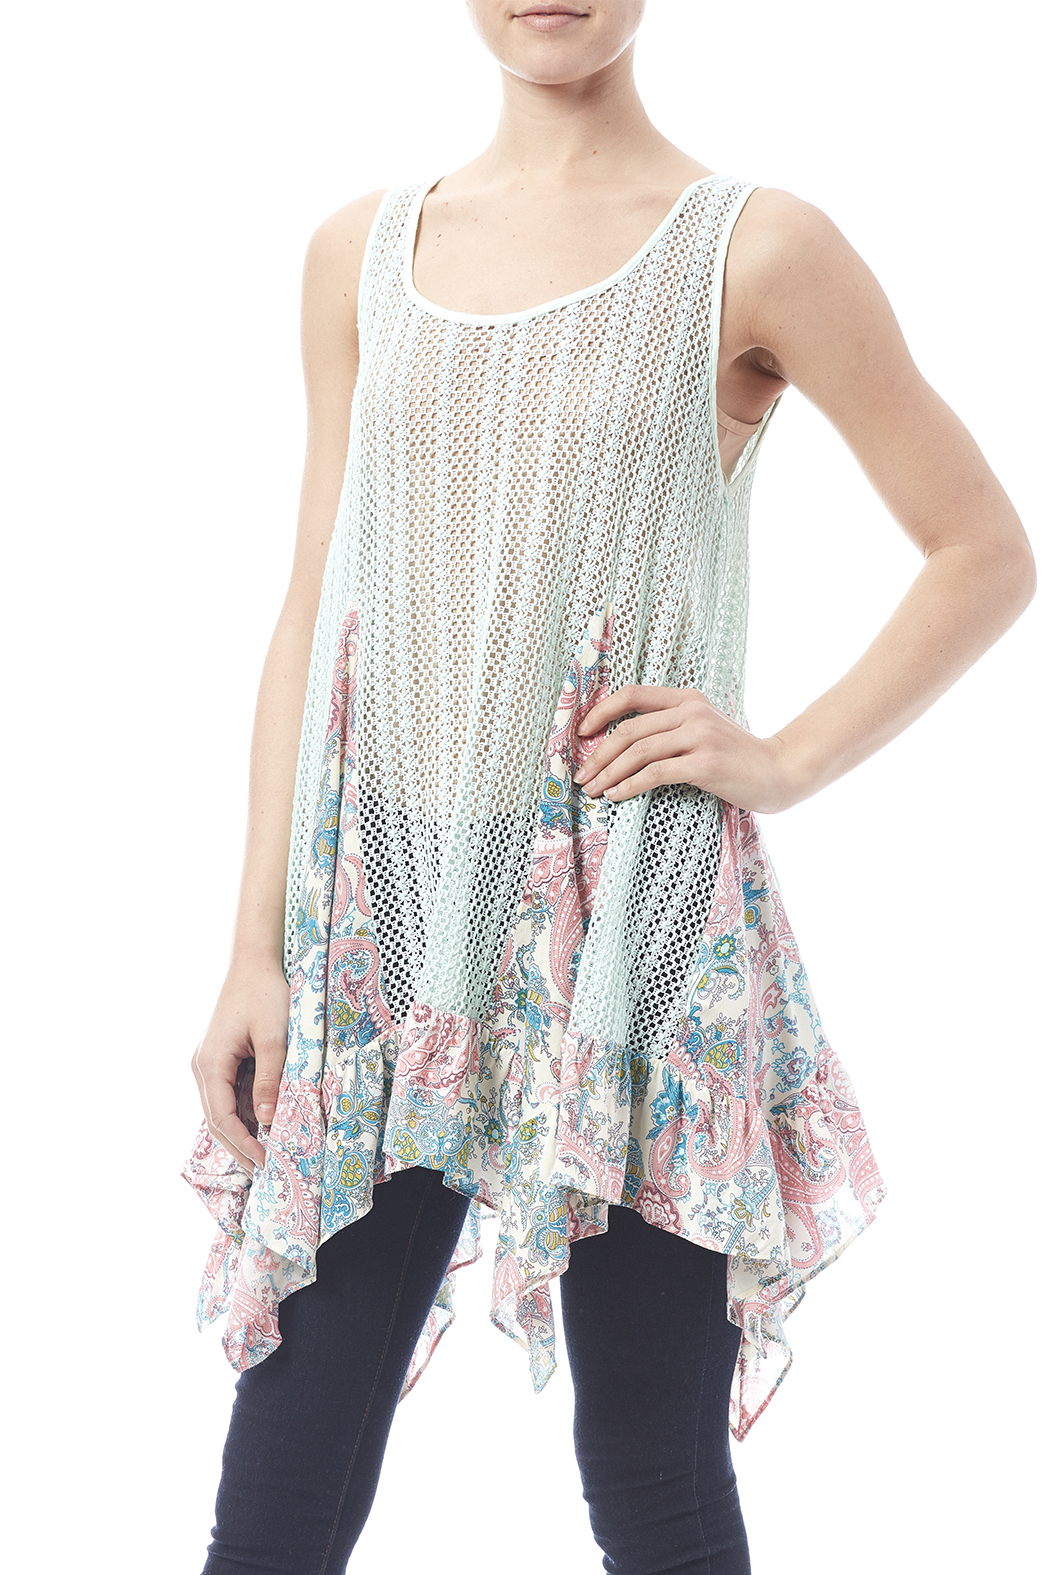 Entro Crochet Paisley Top From Pittsburgh By The Vintage Valet